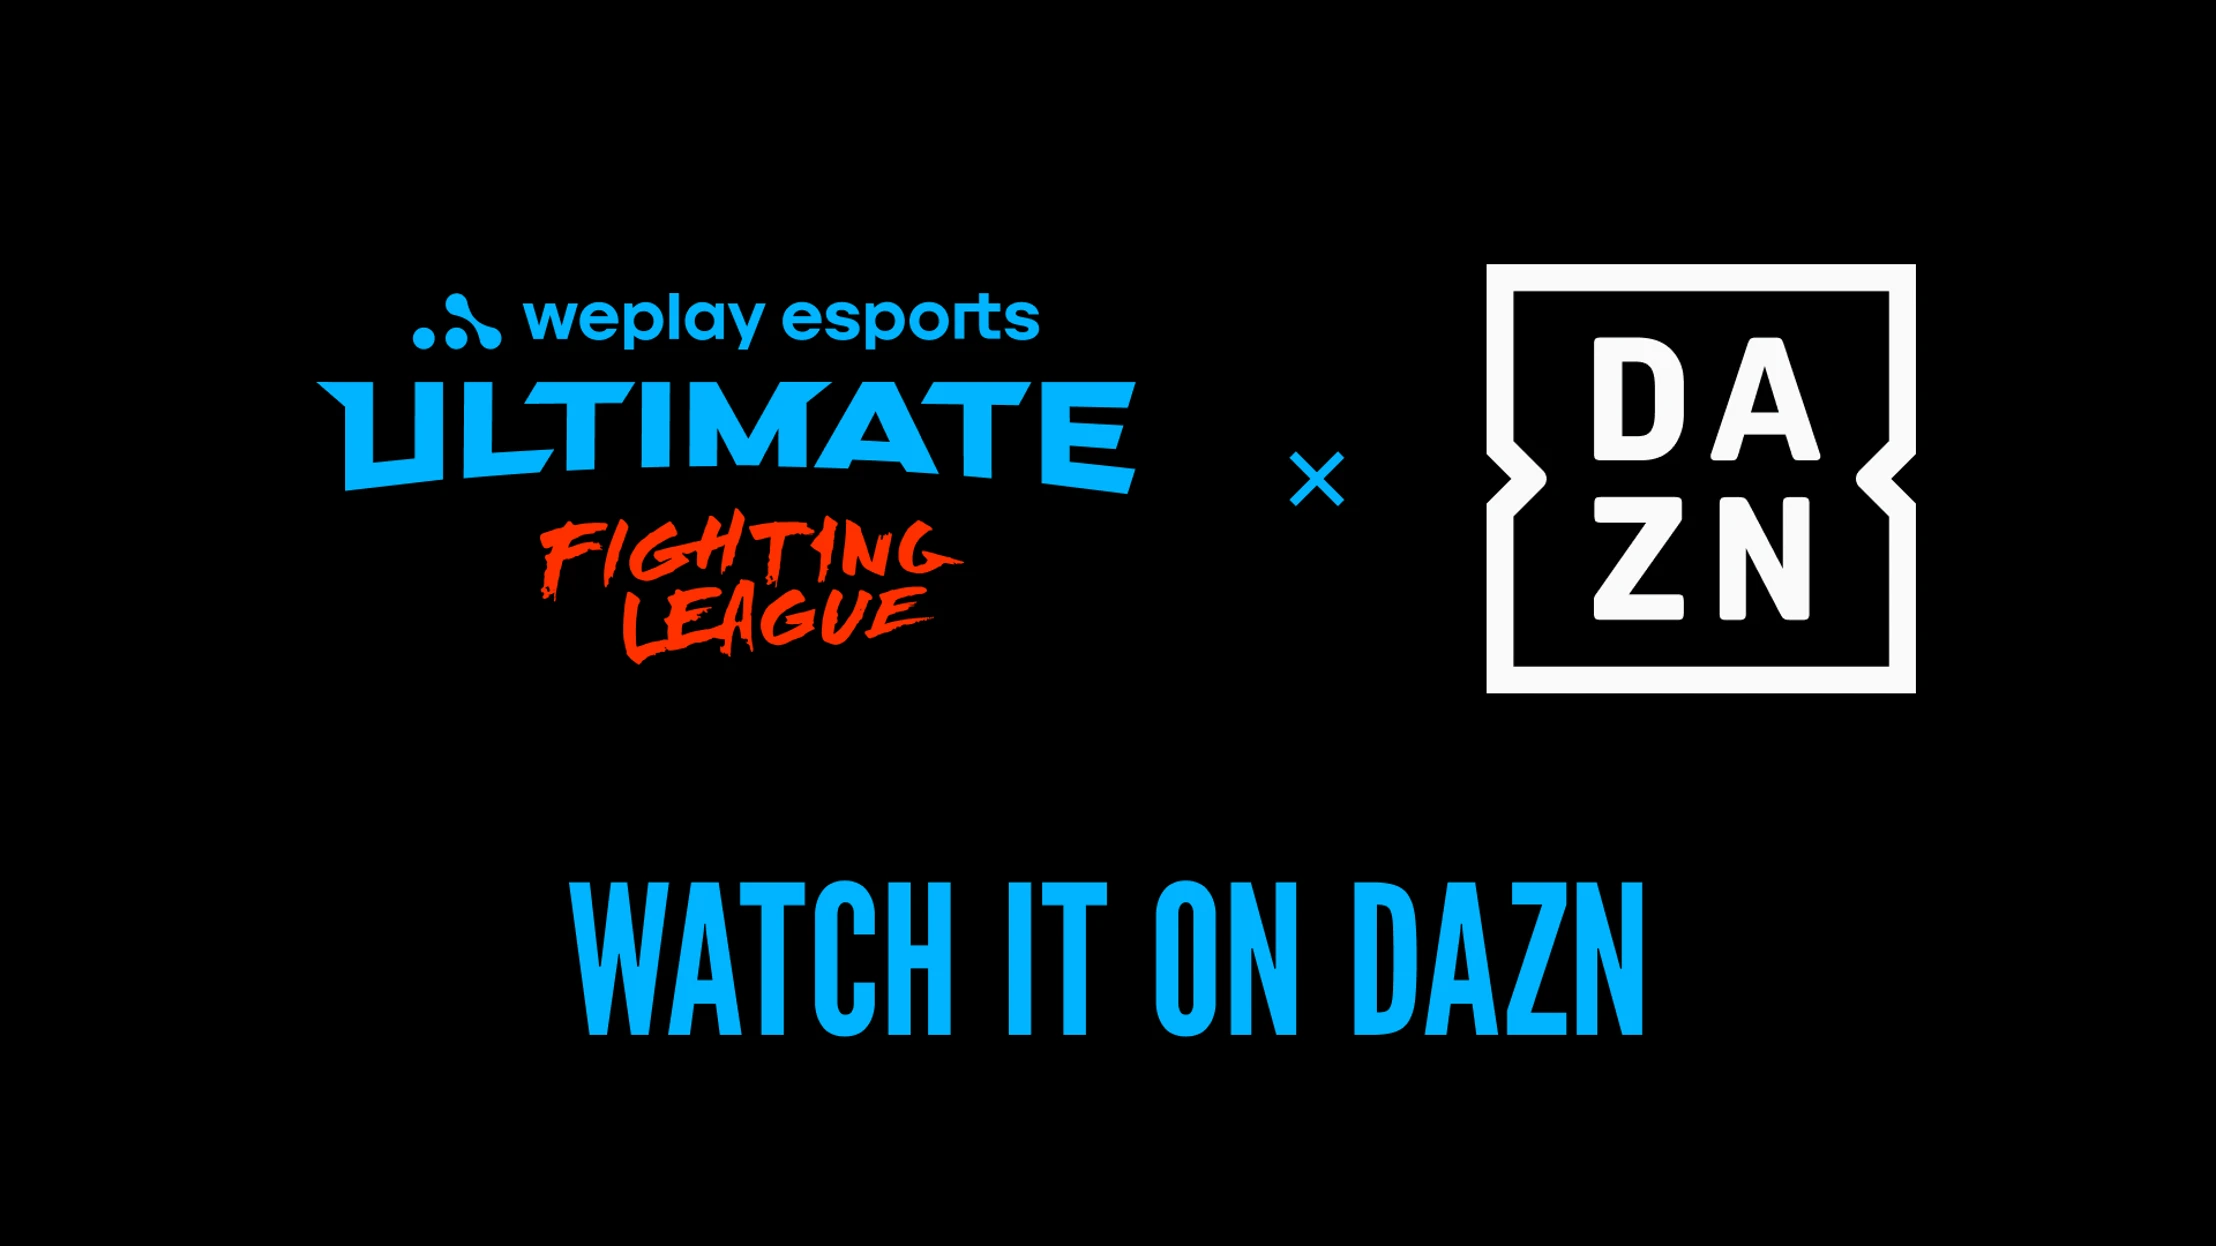 WePlay Esports Ultimate Fighting League